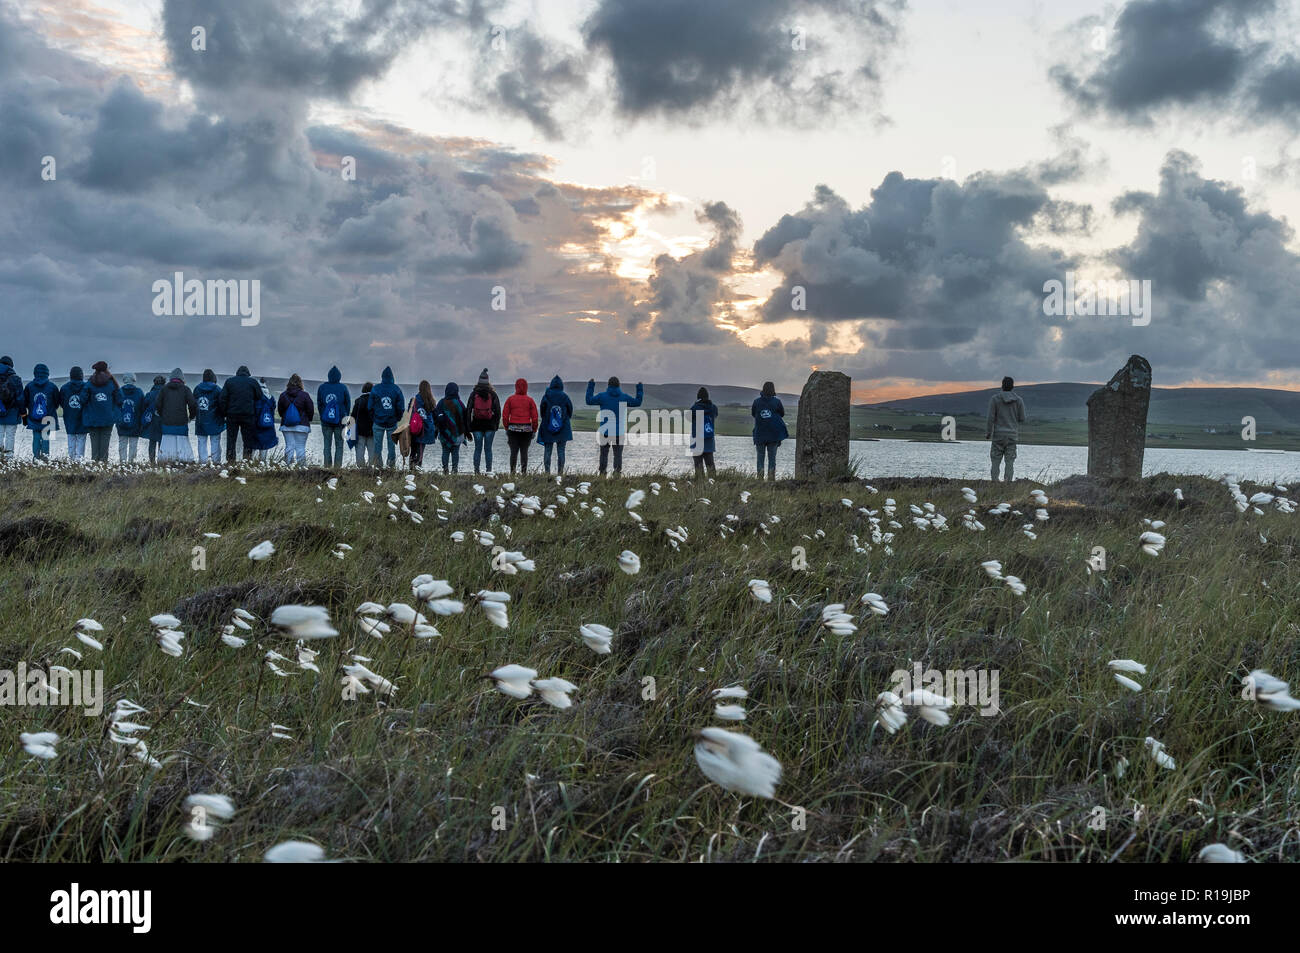 Pagan Gathering at Summer Solstice, Ring of Brodgar, Orkney. - Stock Image